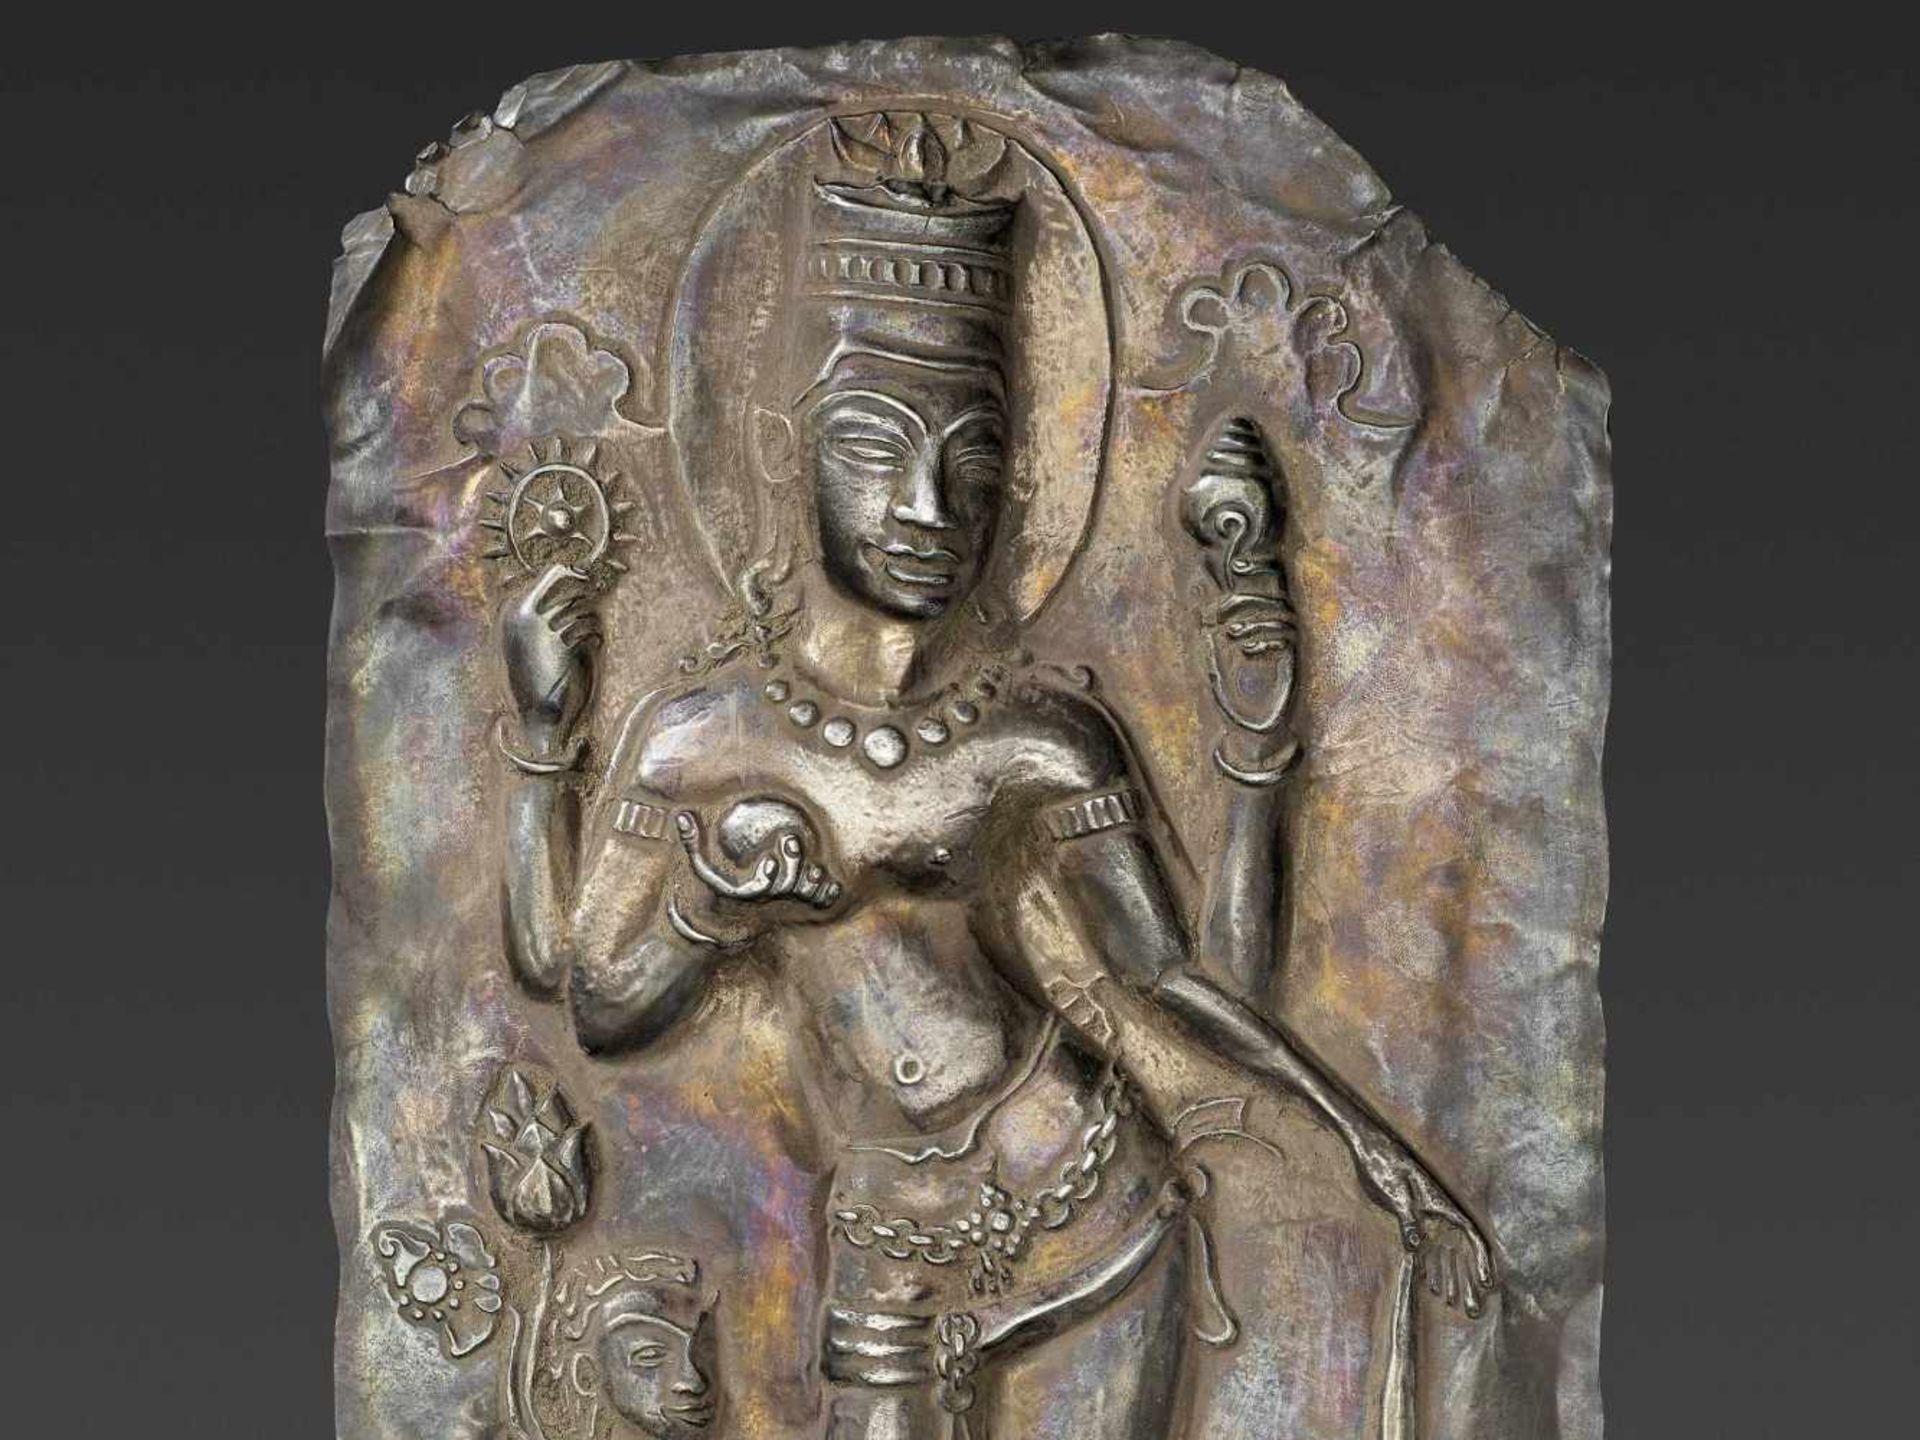 A LARGE CHAM SILVER REPOUSSÉ PLAQUE DEPICTING VISHNU AND CHILD - Bild 3 aus 5